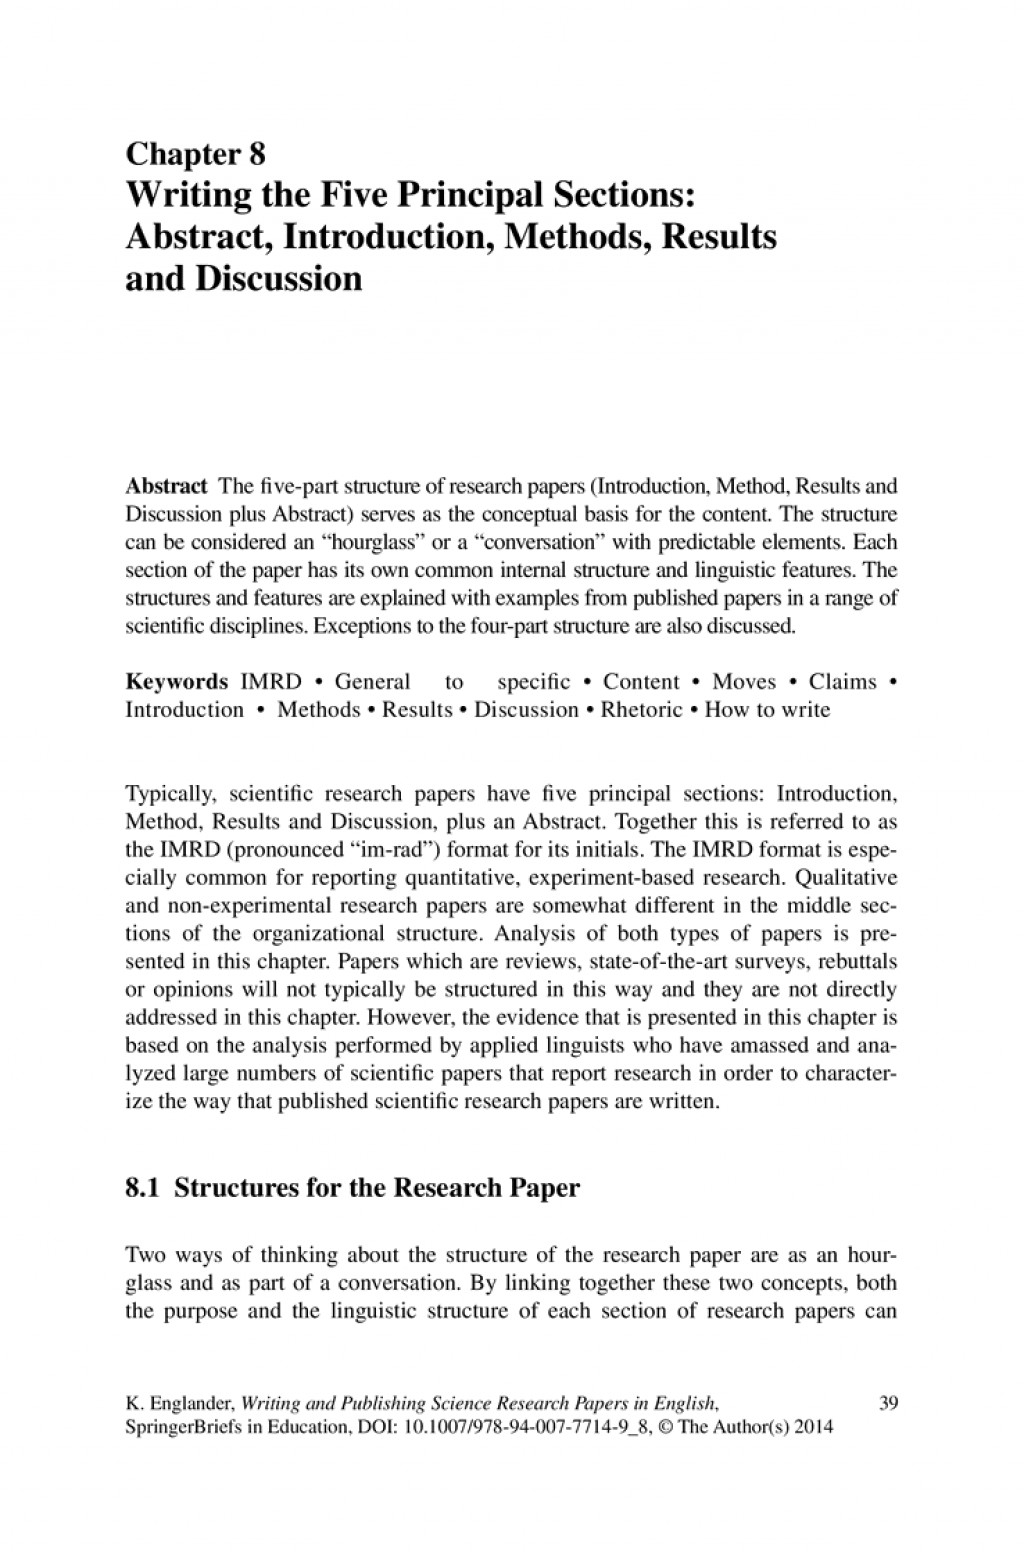 001 Research Paper Writing The Five Principal Sectionsbstract Introduction Methods Resultsnd Discussion Essay Forum L Example Of Part Stunning A Findings And In Results Qualitative Conclusion Large